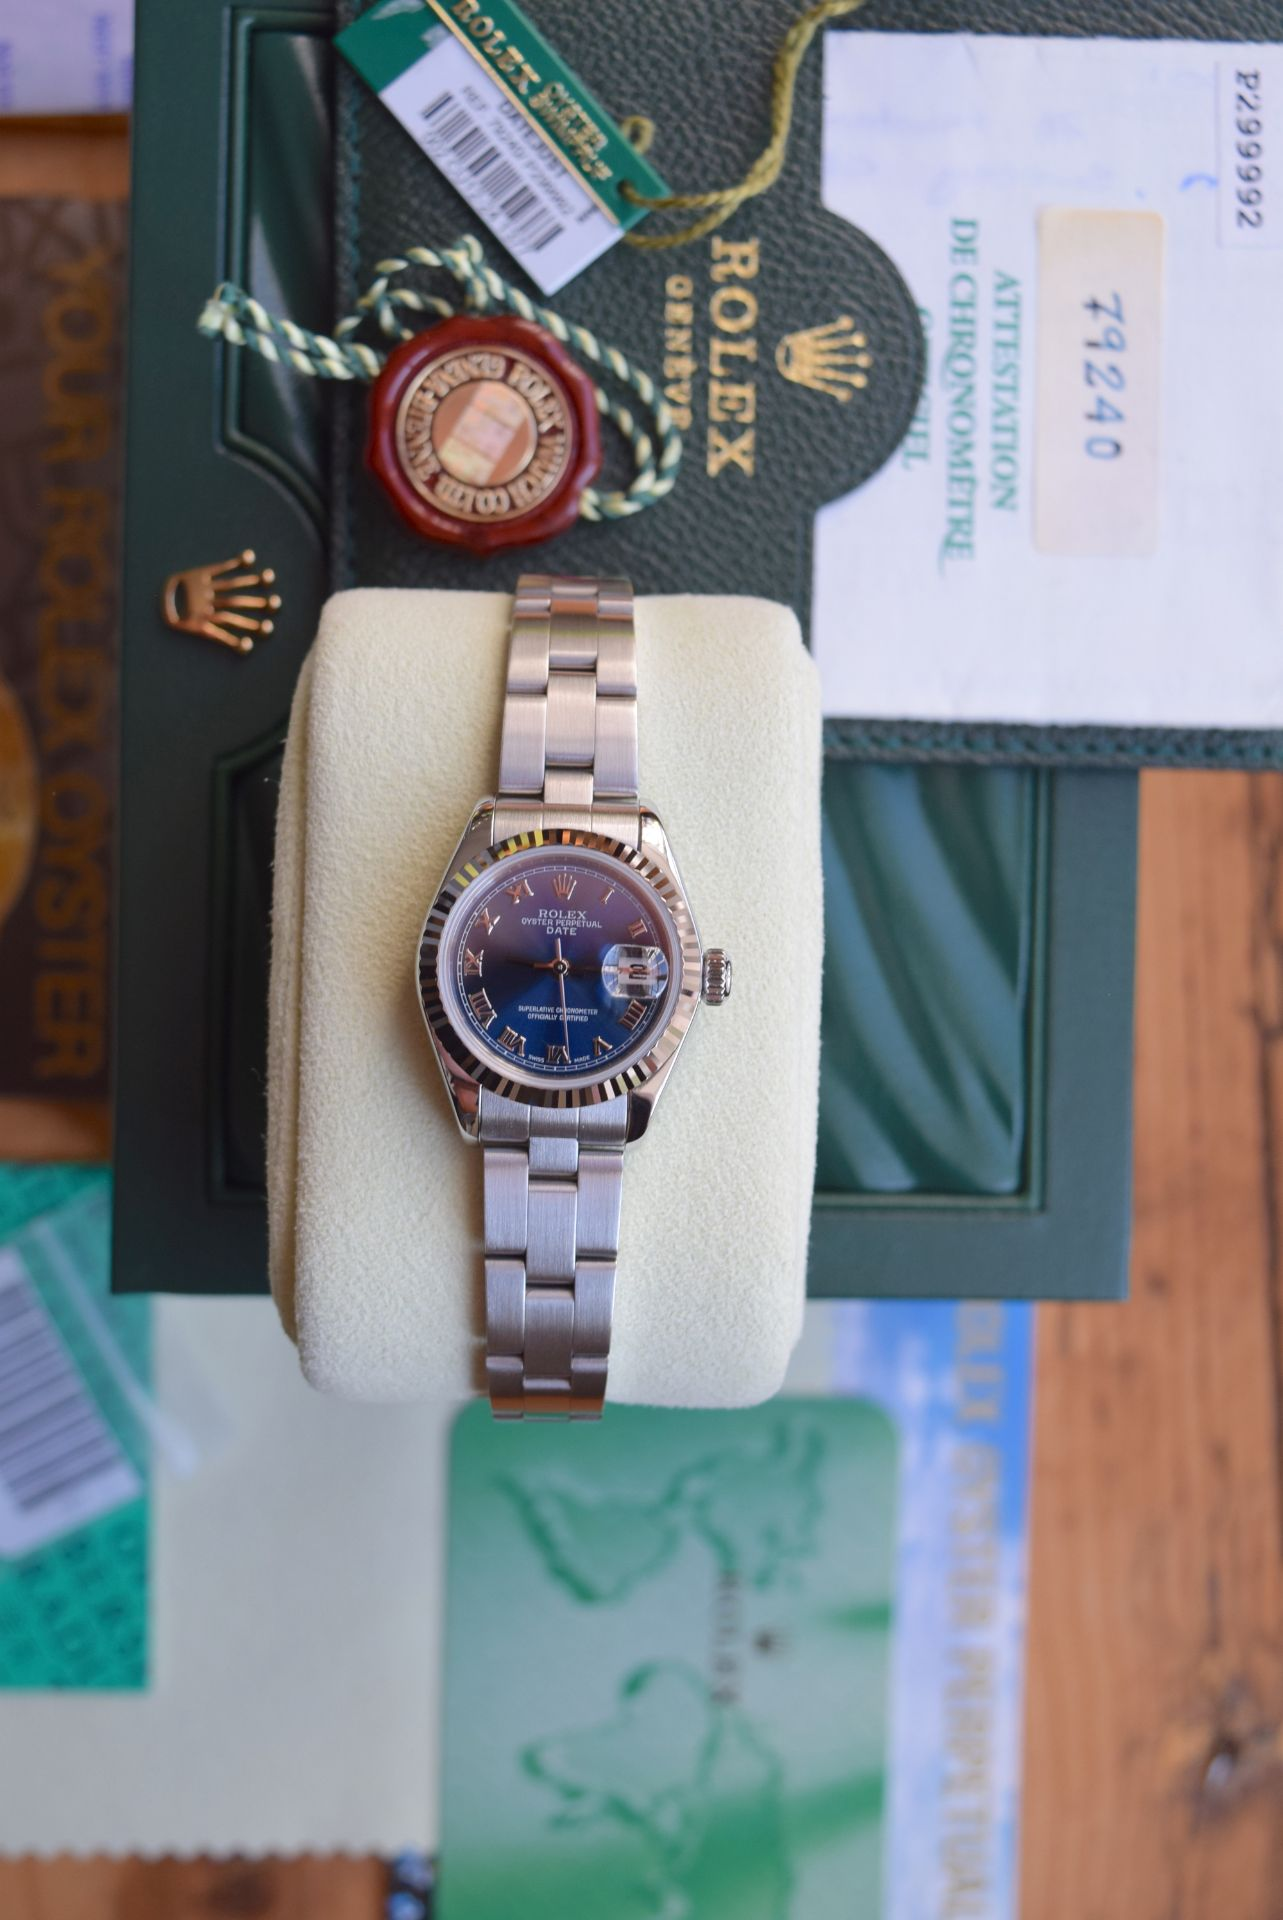 *FULL SET* ROLEX DATEJUST (LADIES) STEEL & 18CT WHITE GOLD - NAVY BLUE 'ROMAN NUMERAL' DIAL - Image 2 of 19